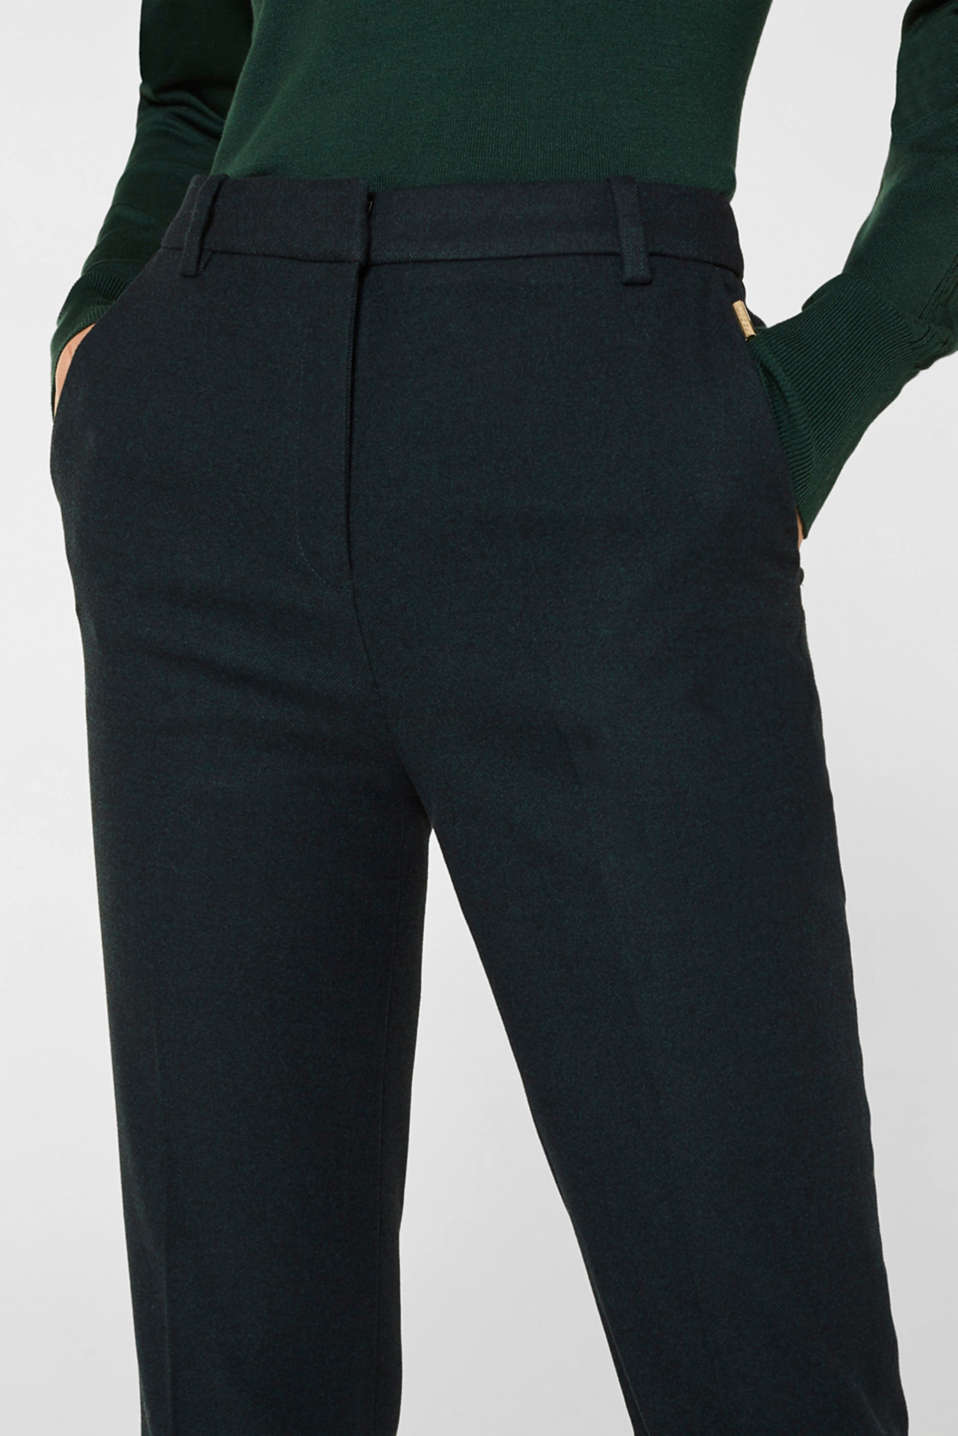 Flannel trousers with stretch for comfort, DARK TEAL GREEN, detail image number 2